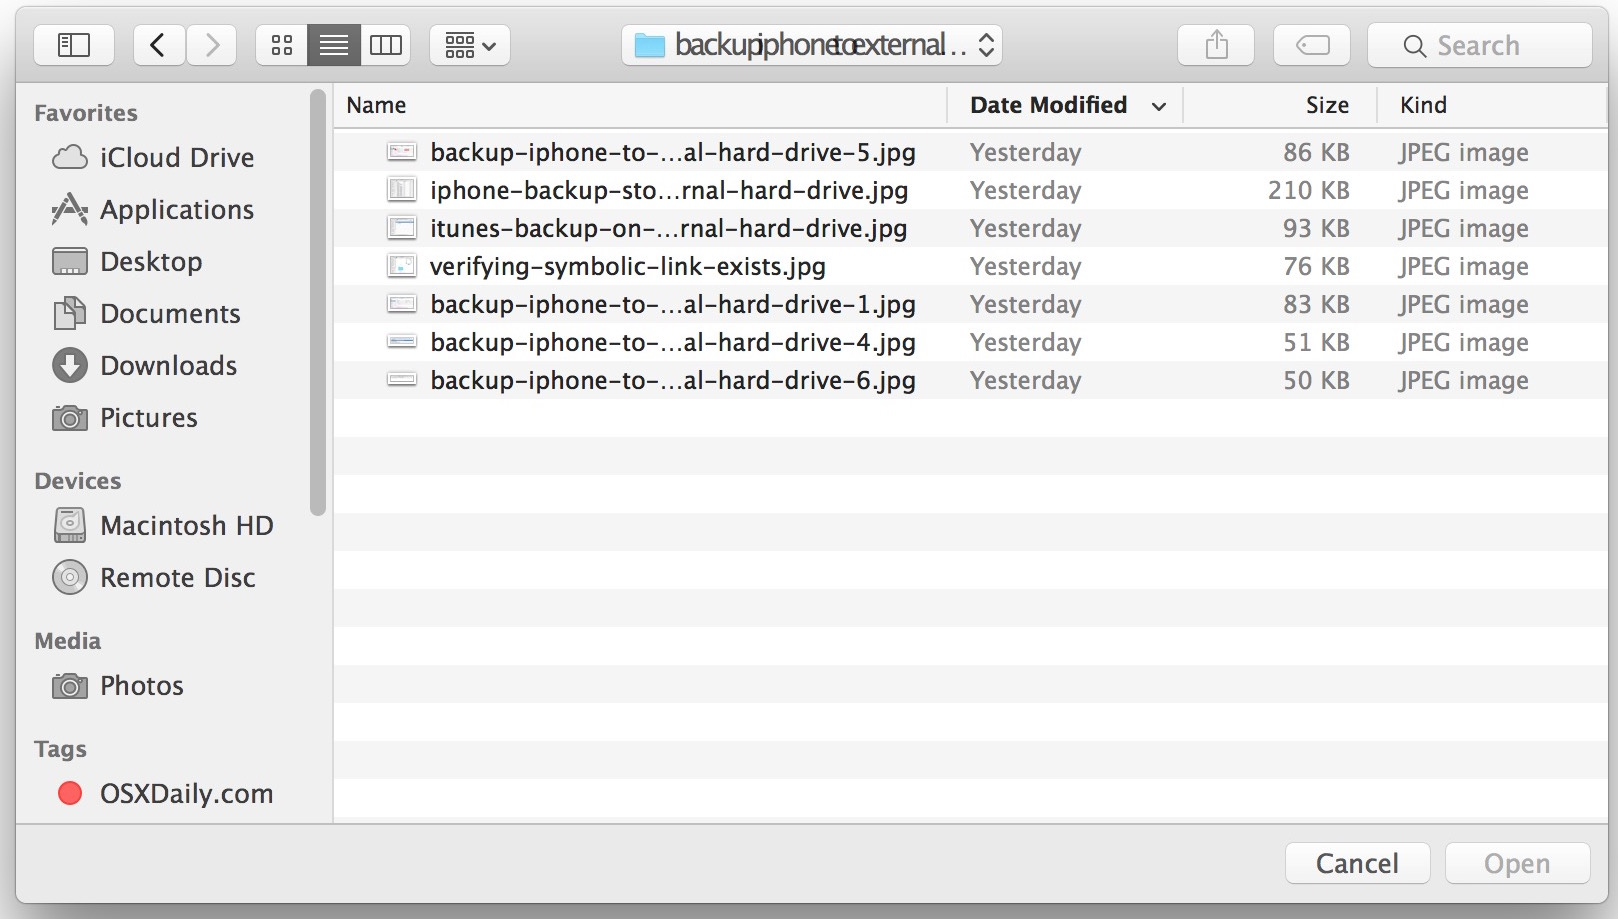 Sidebar visible in Open and Save window of Mac OS X